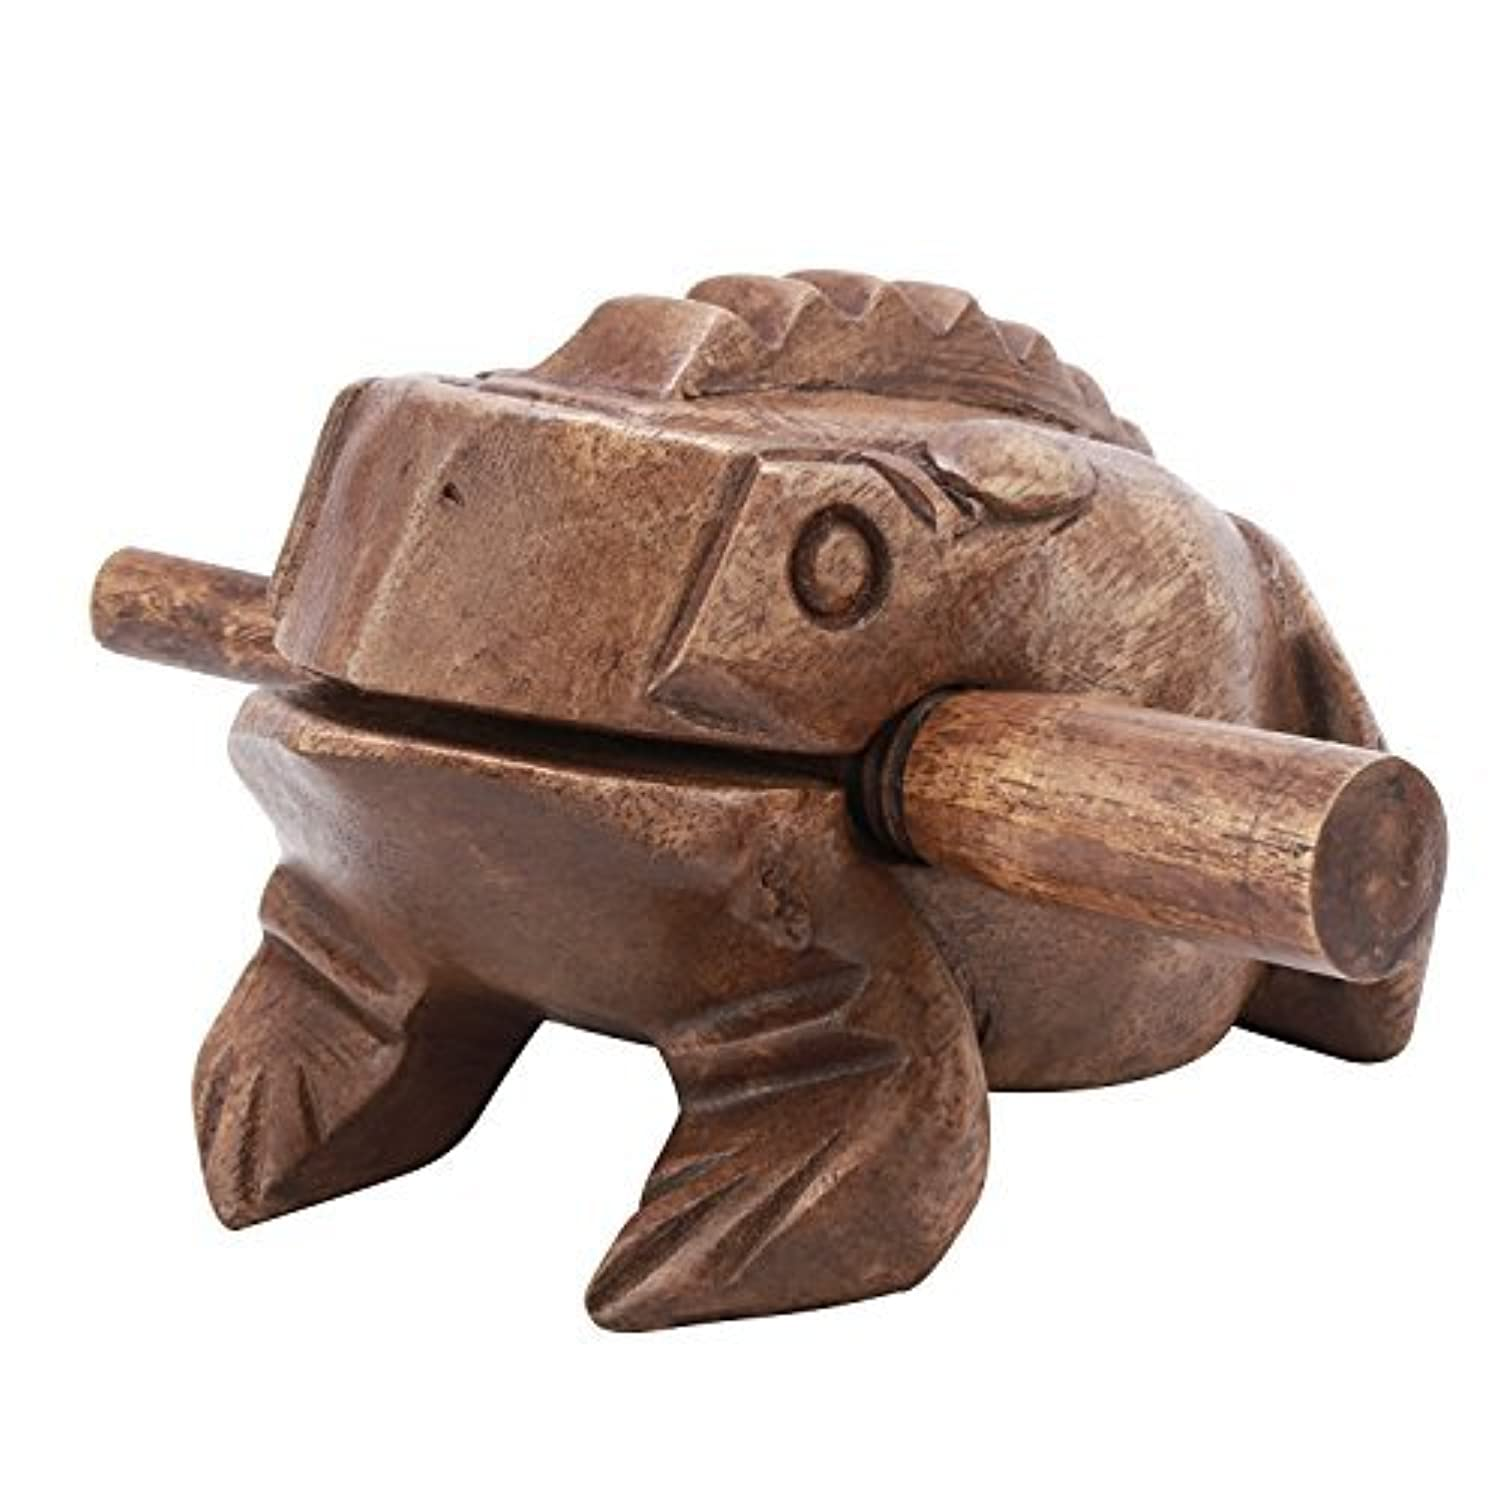 Moukey Handcraft Wooden Frog Guiro Percussion Frog Croaking Ribbit Wooden Block Musical Instrument Large Size 6 inch [並行輸入品]